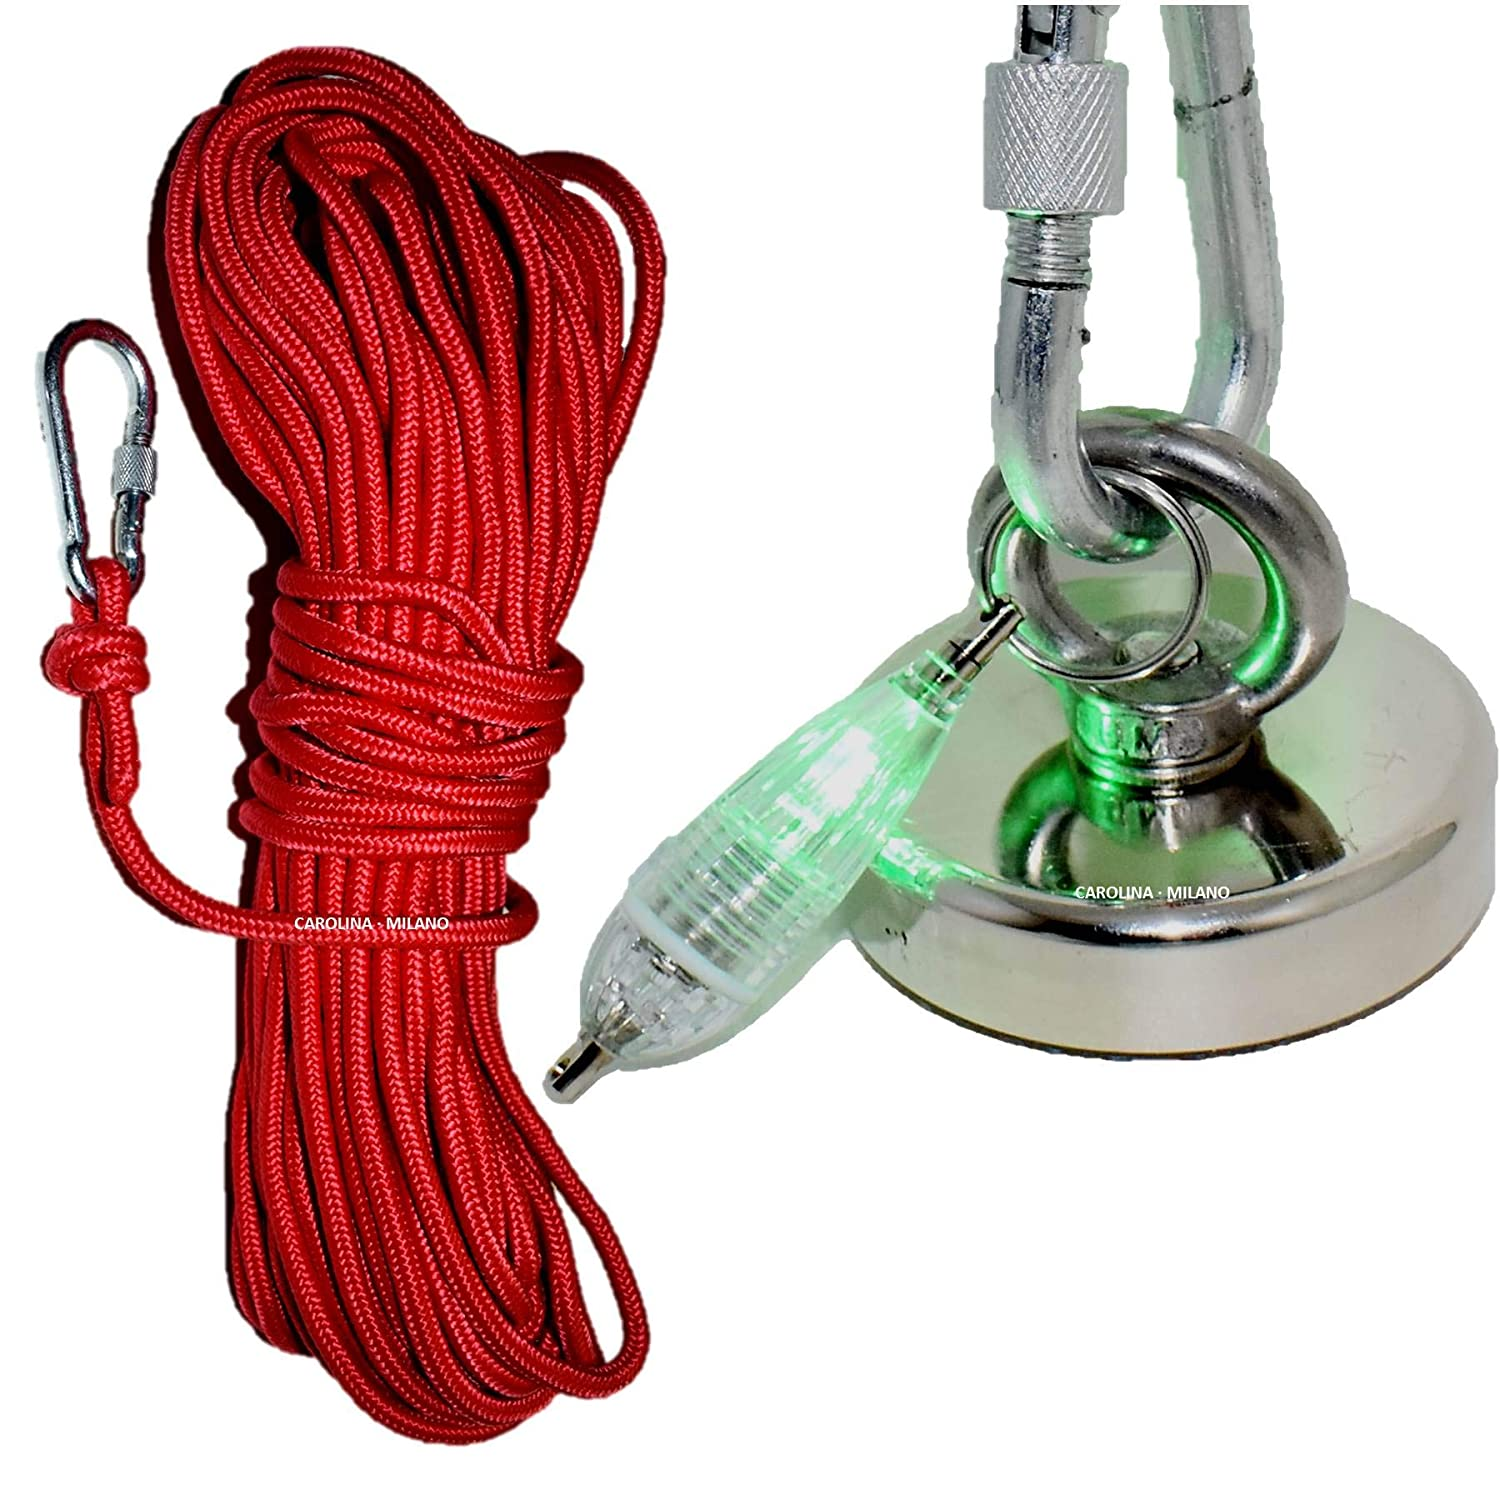 M8 Eyebolt 98ft 8mm Rope /& LED Light Retrieve from Rivers Lakes Canals Single Side Fishing Magnet kit 350 LBS Pulling Force Ultra Strong Rare Earth Neodymium Magnet N52 Magnetic Grade Diameter 2.36